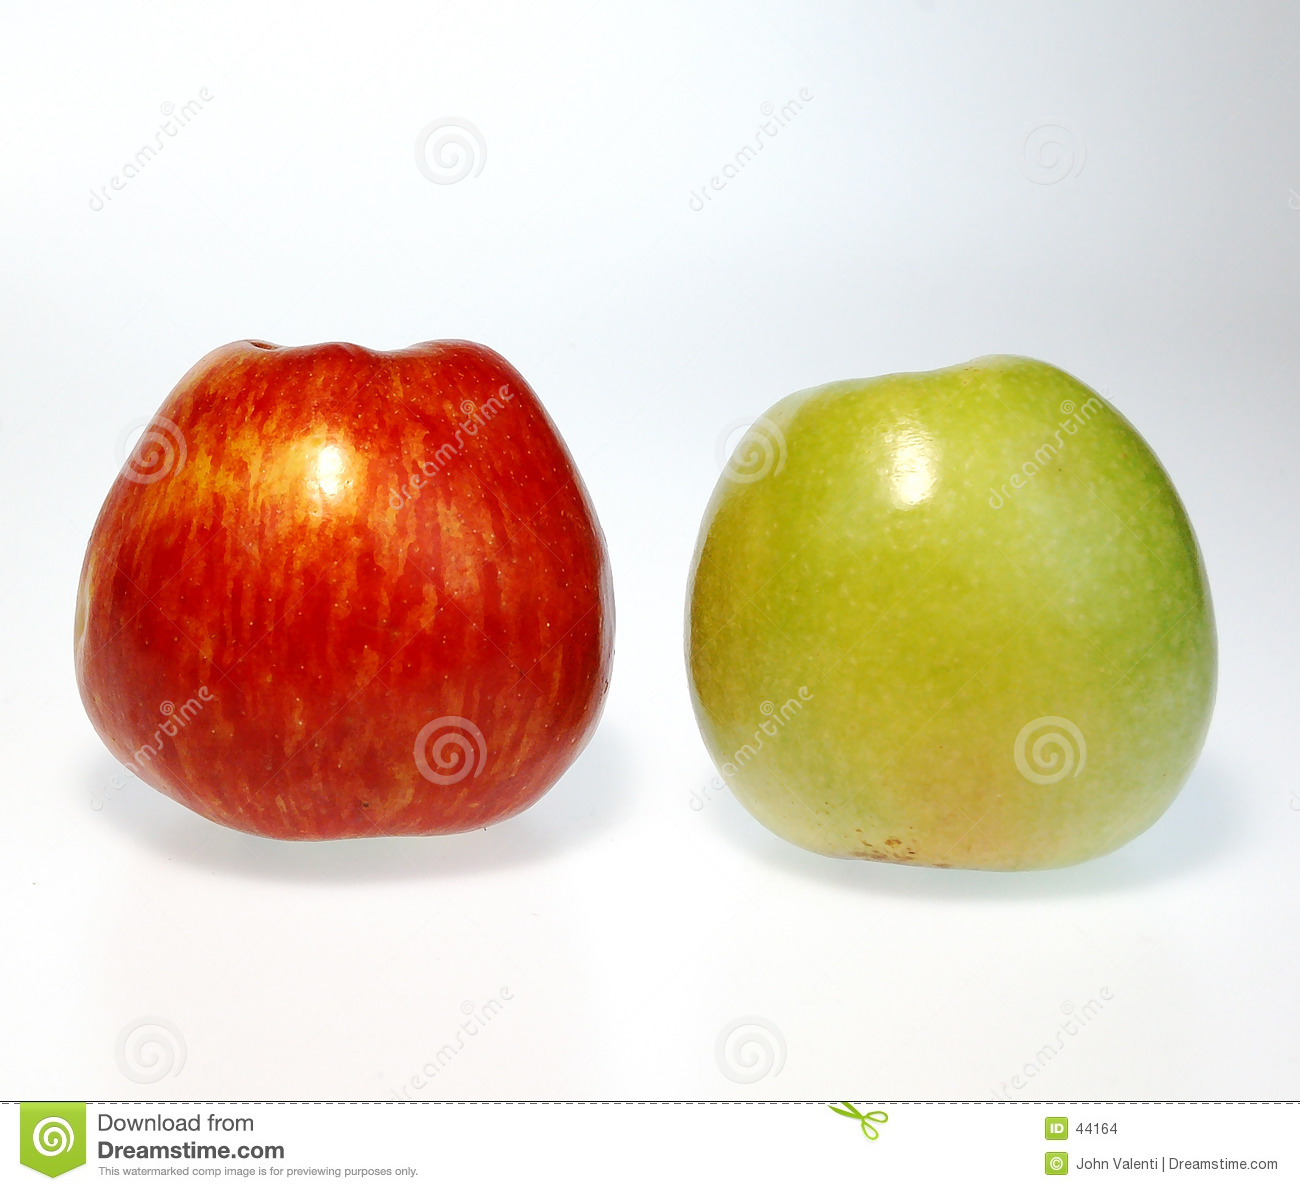 Red & Green apples